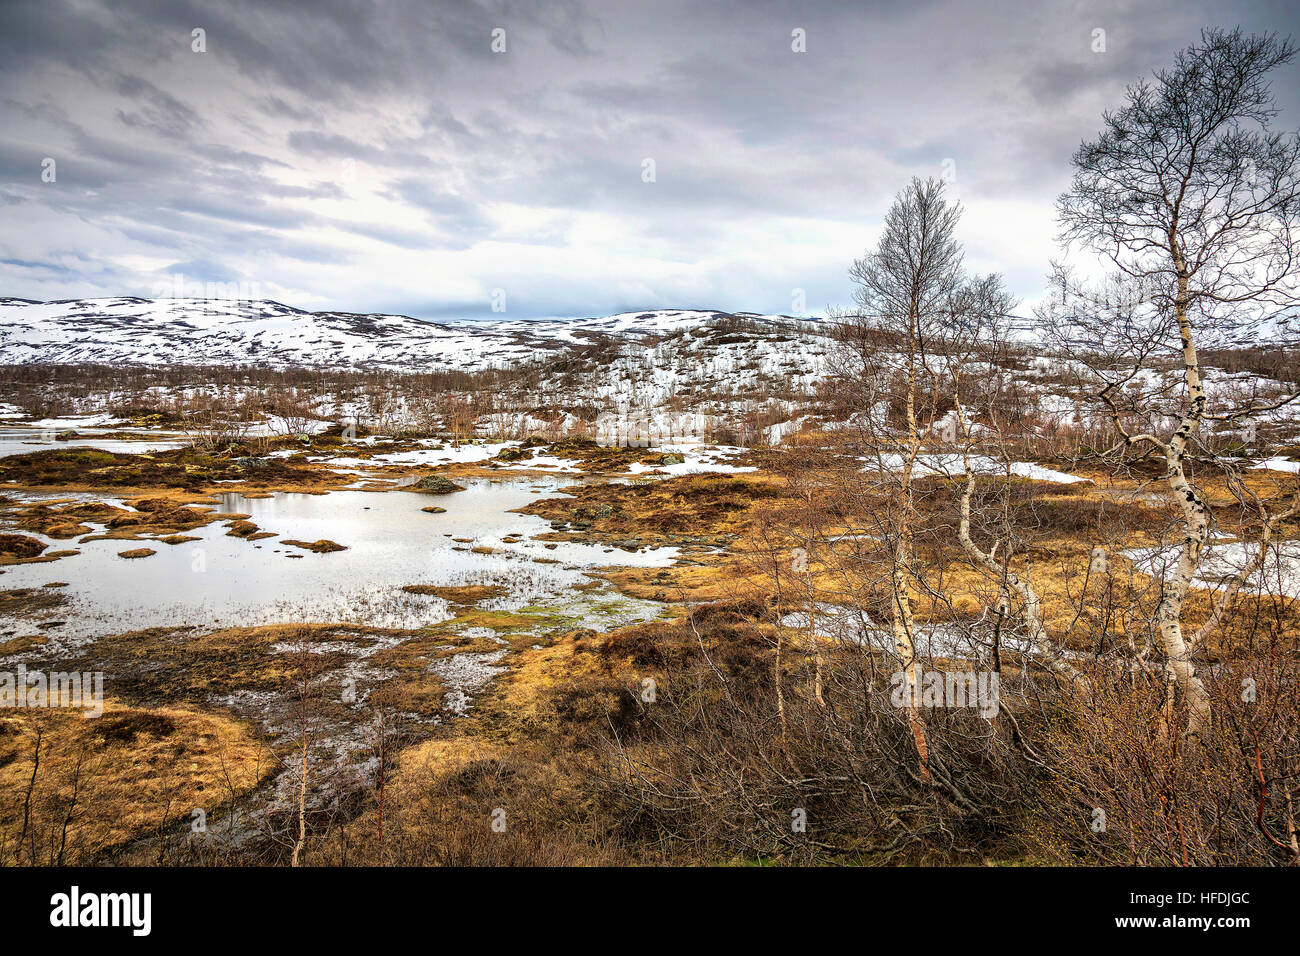 Thawing snow revealing the plants and landscape at Jotunheimen National Park, Norway - Stock Image